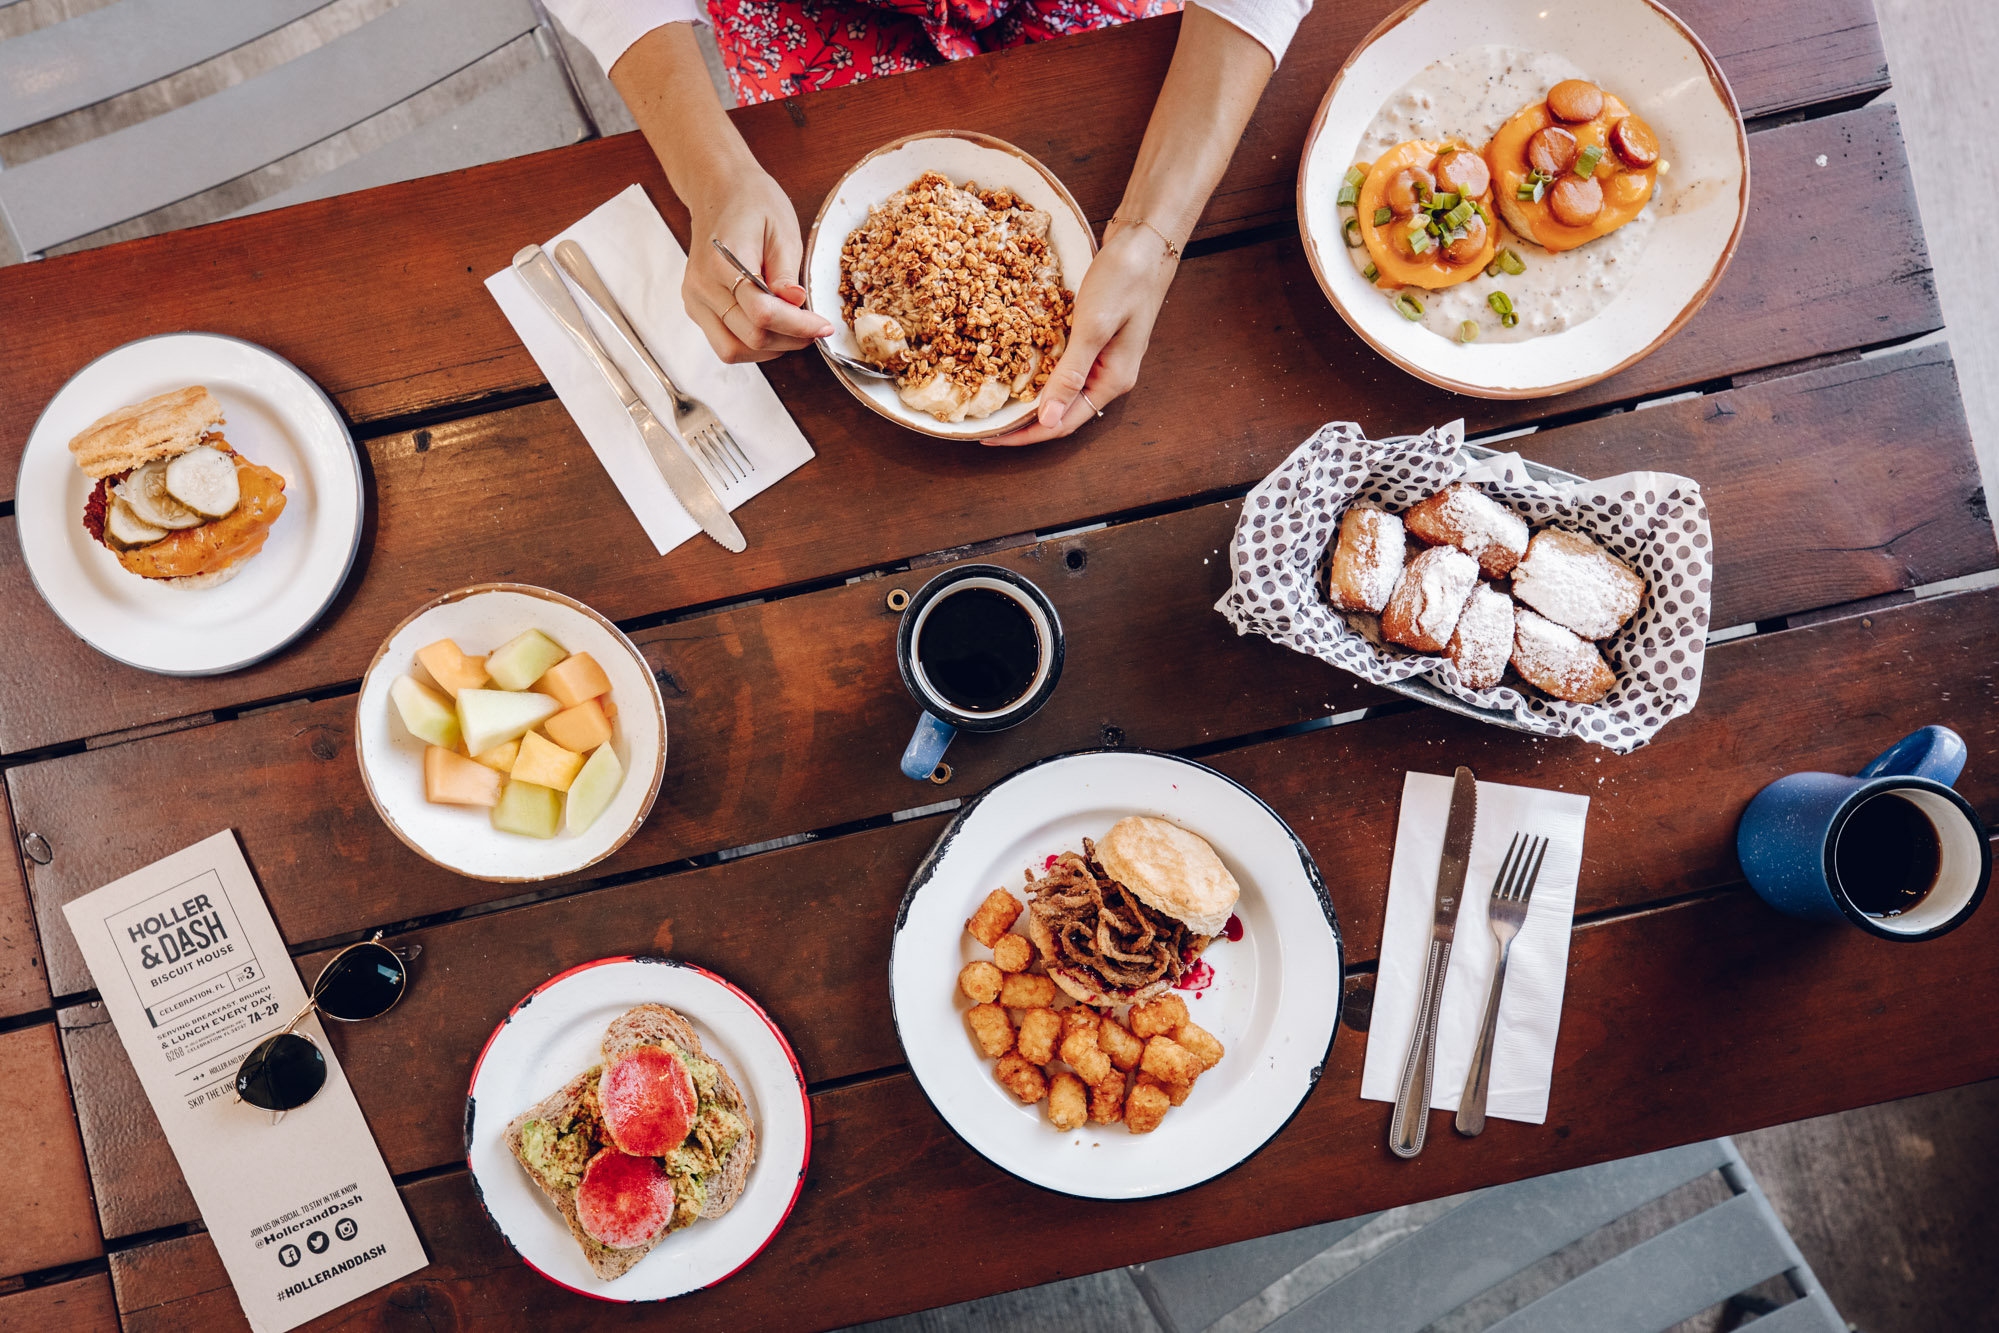 Southern brunch with biscuits at Holler and Dash in Kissimmee Florida